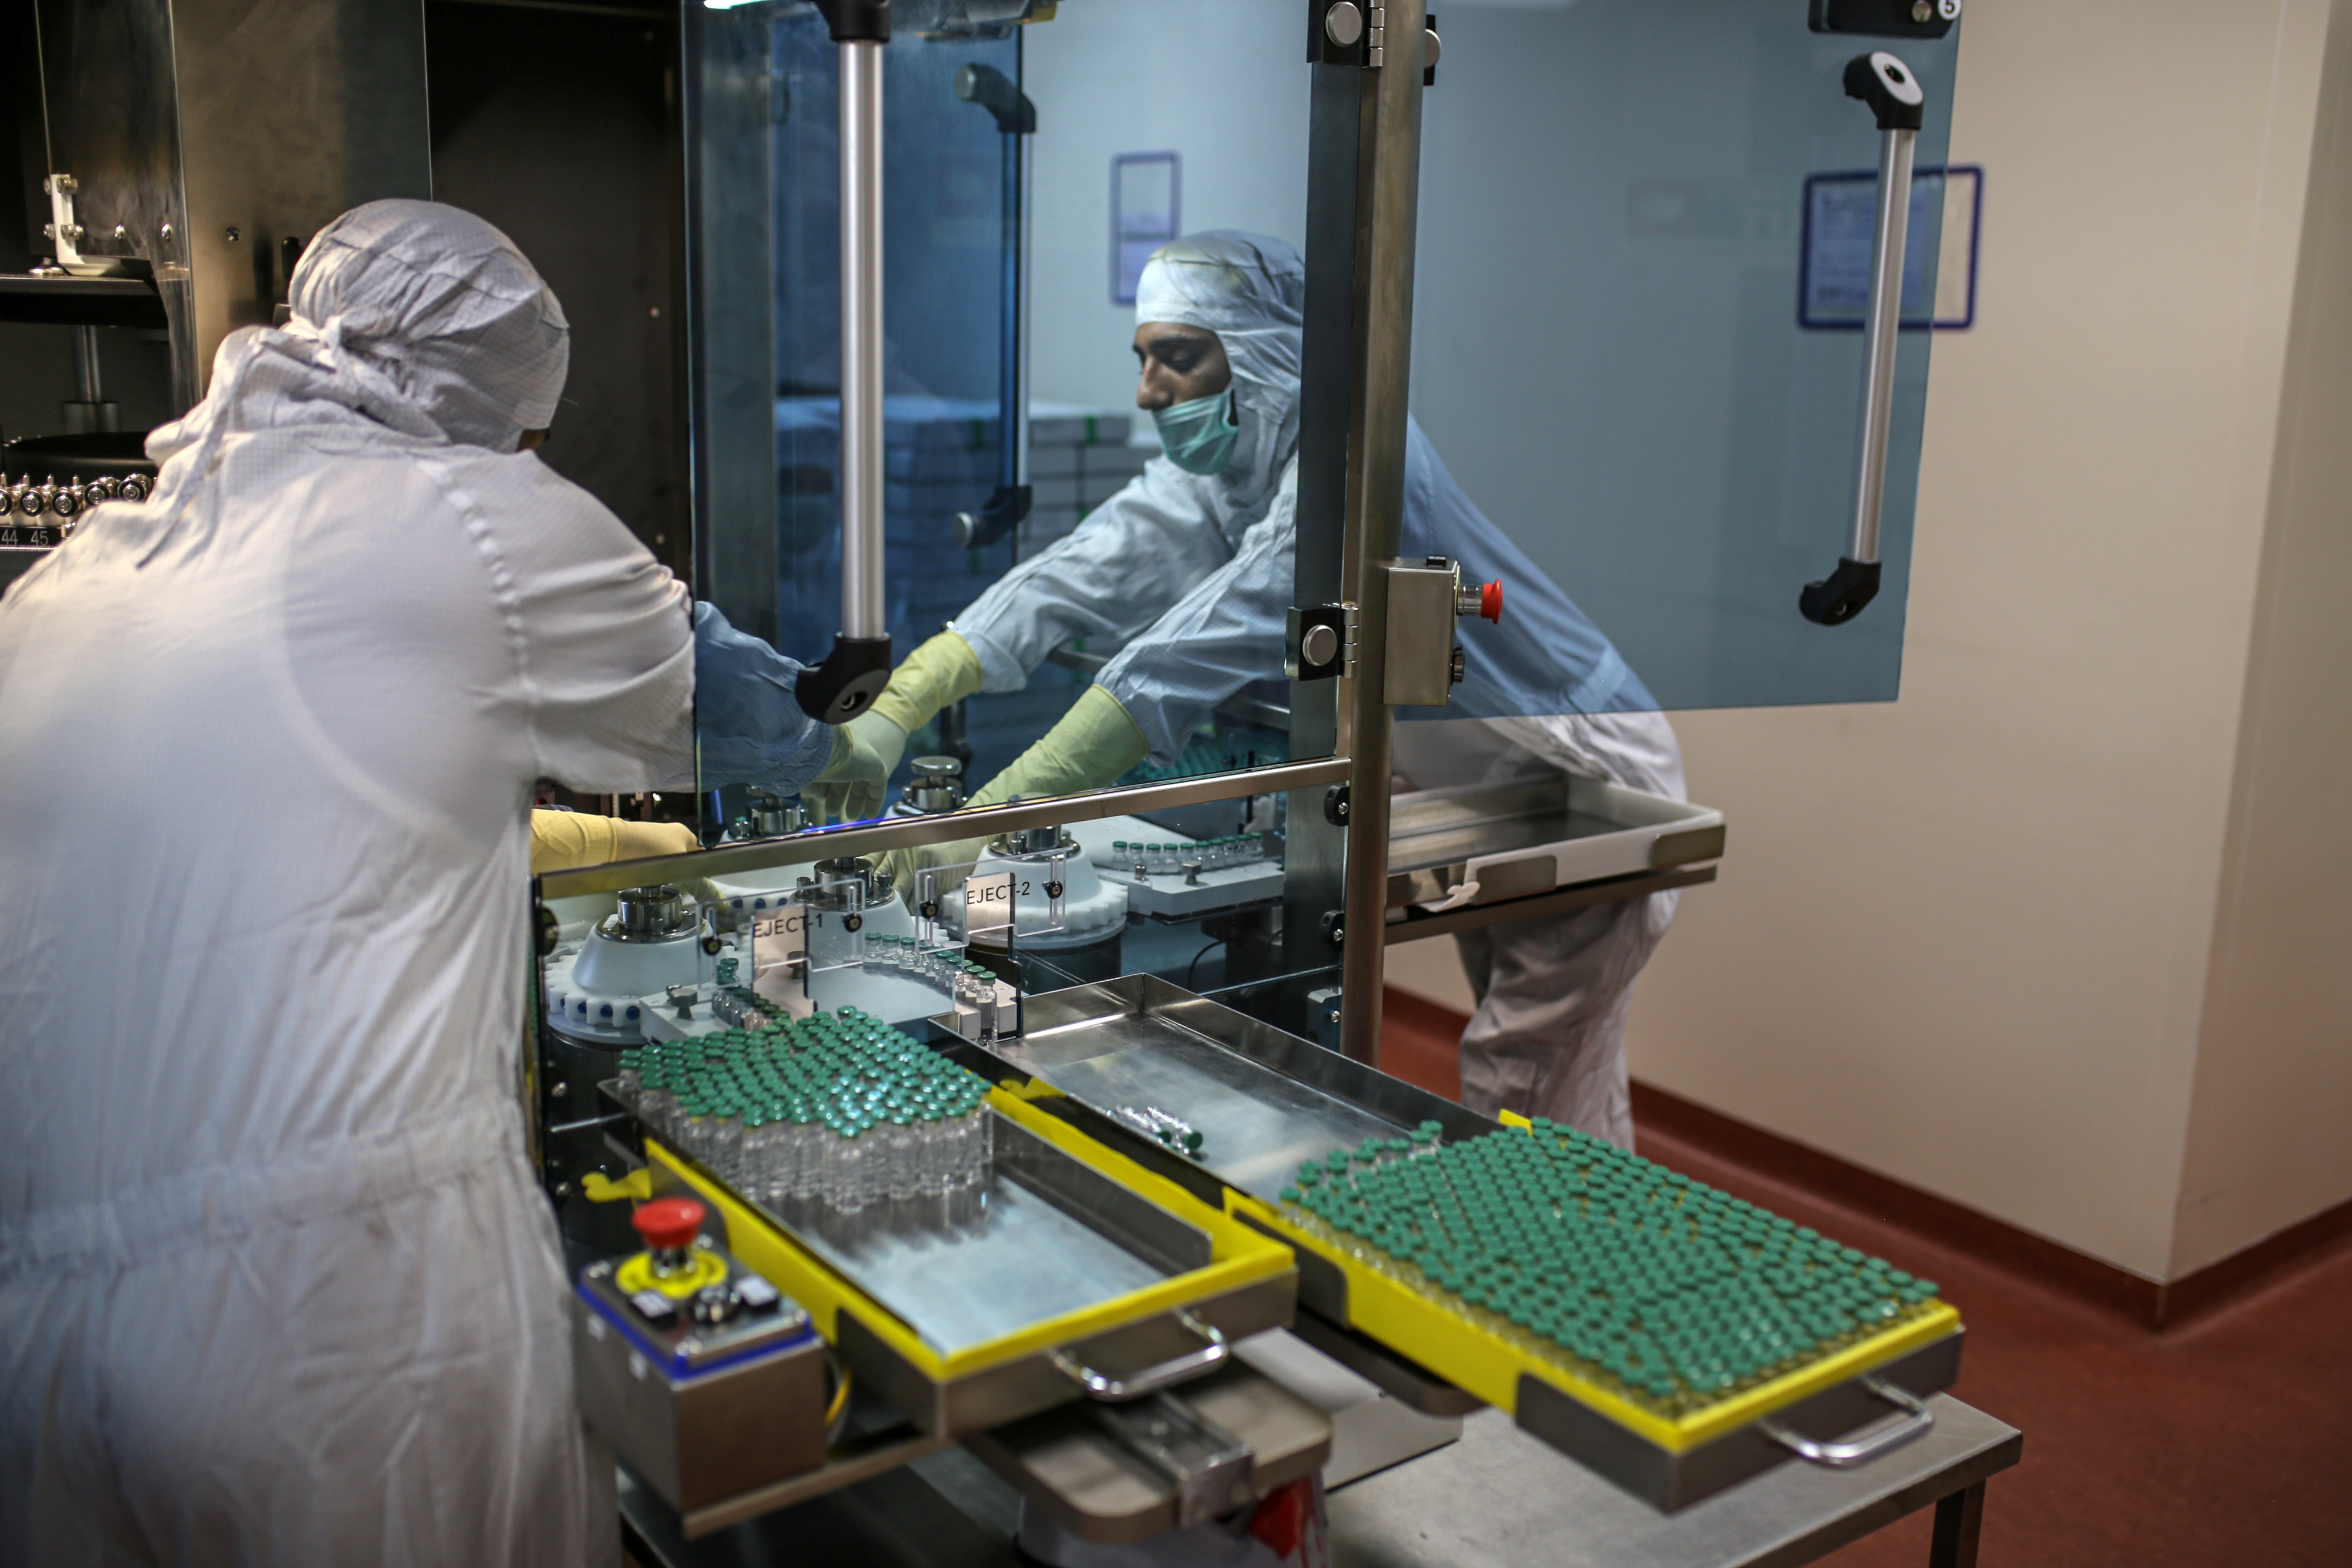 Covid Vaccine Production and Logistical Facilities at Serum Institute, the World's Largest Vaccine Maker